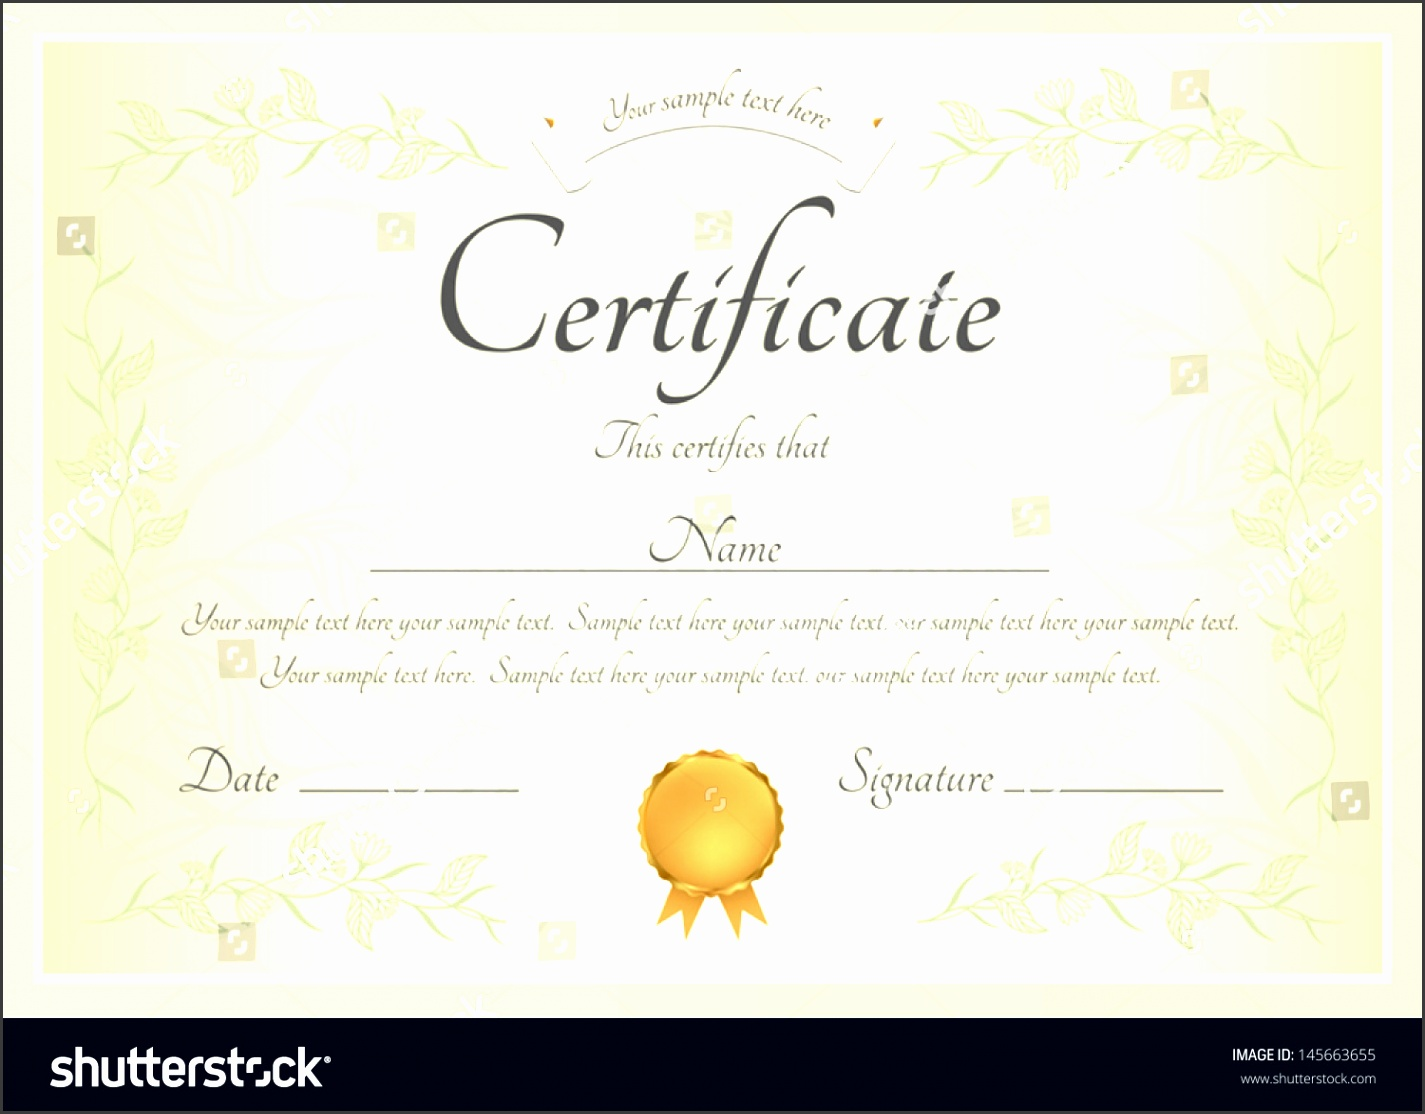 certificate of pletion template or sample background with floral pattern green frame and